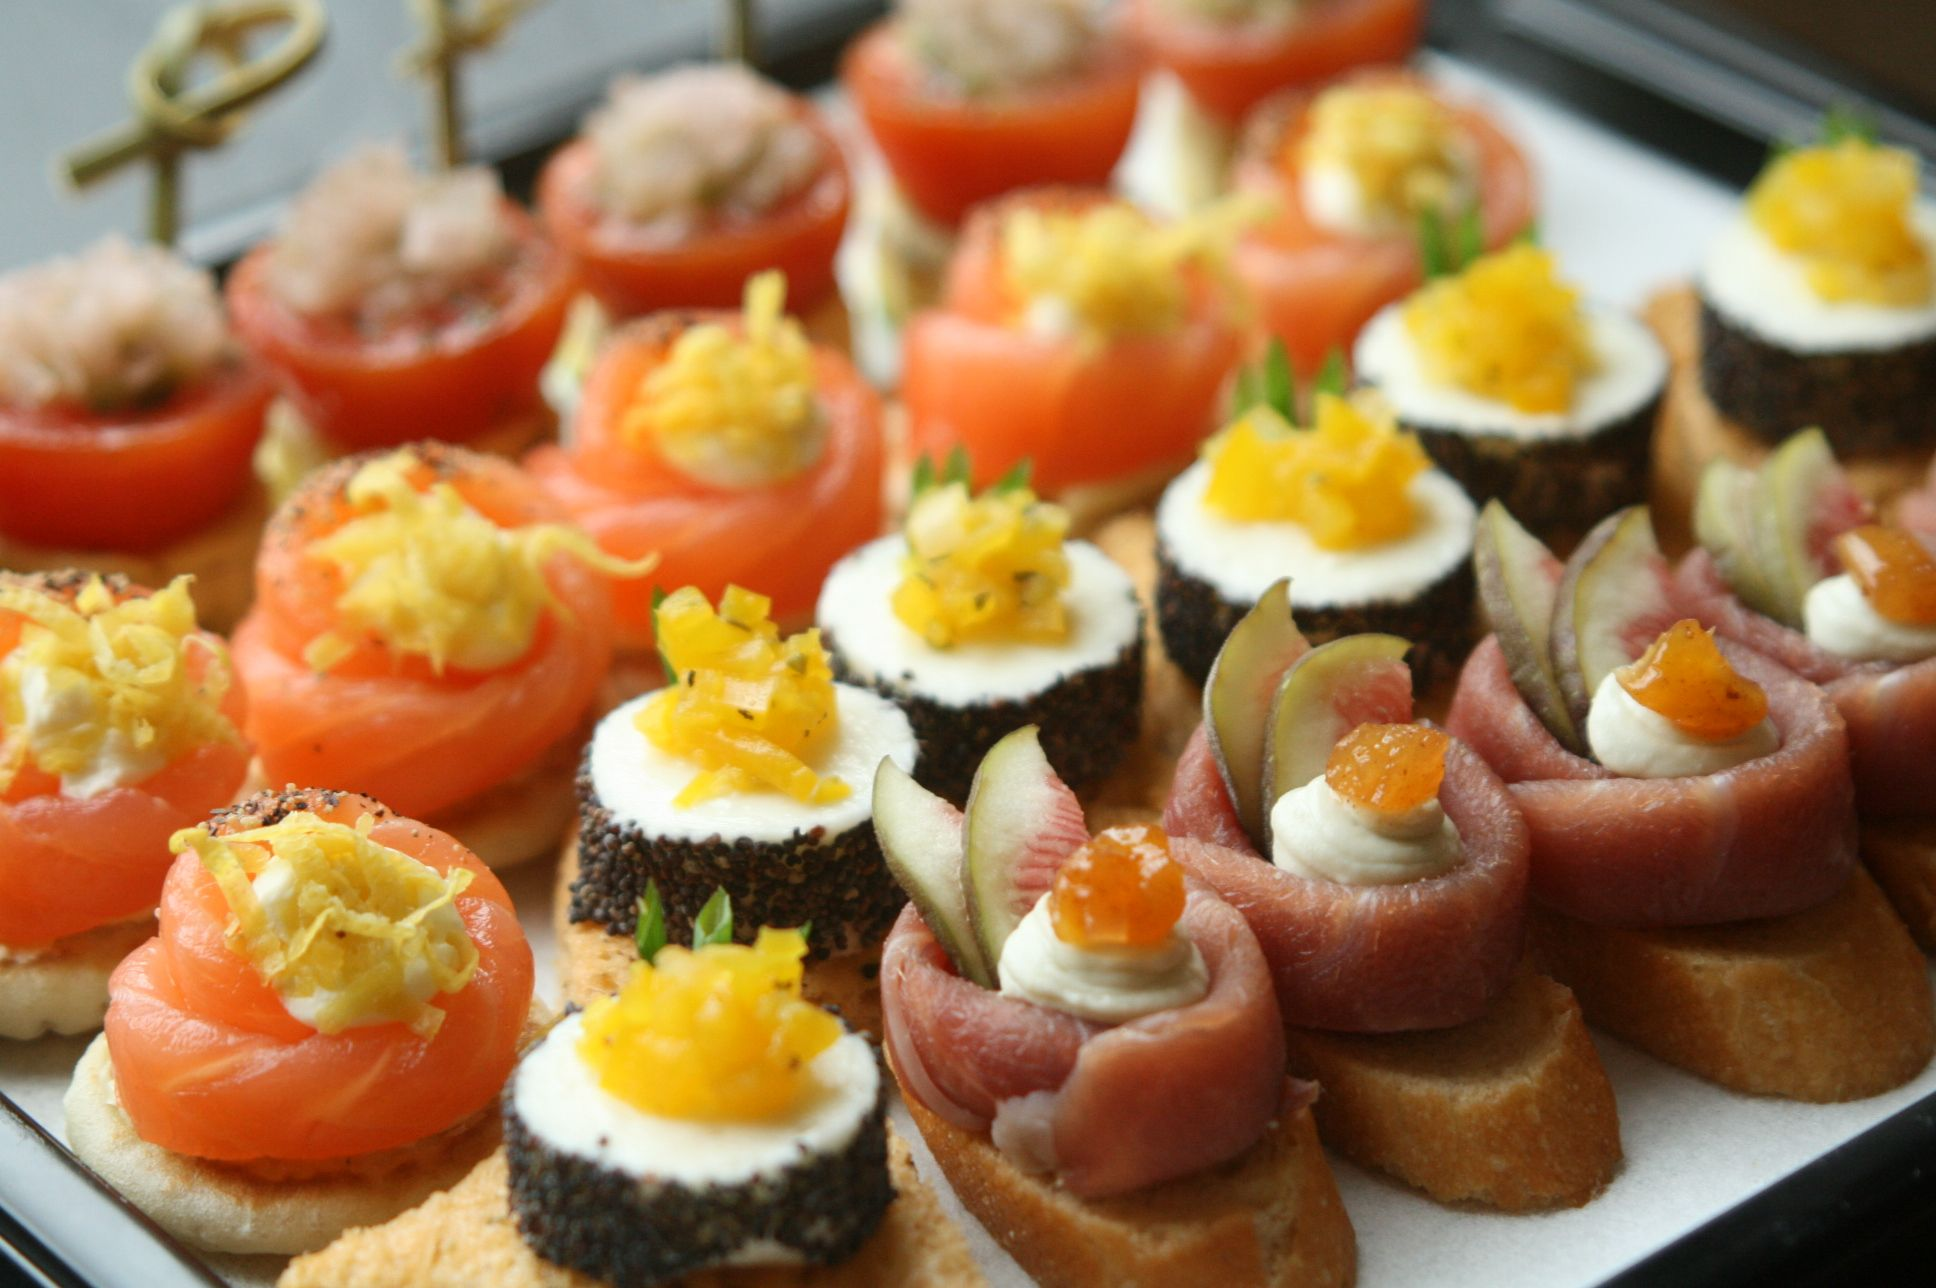 Canapes resultados da busca avg yahoo search culinary for Wedding canape alternatives